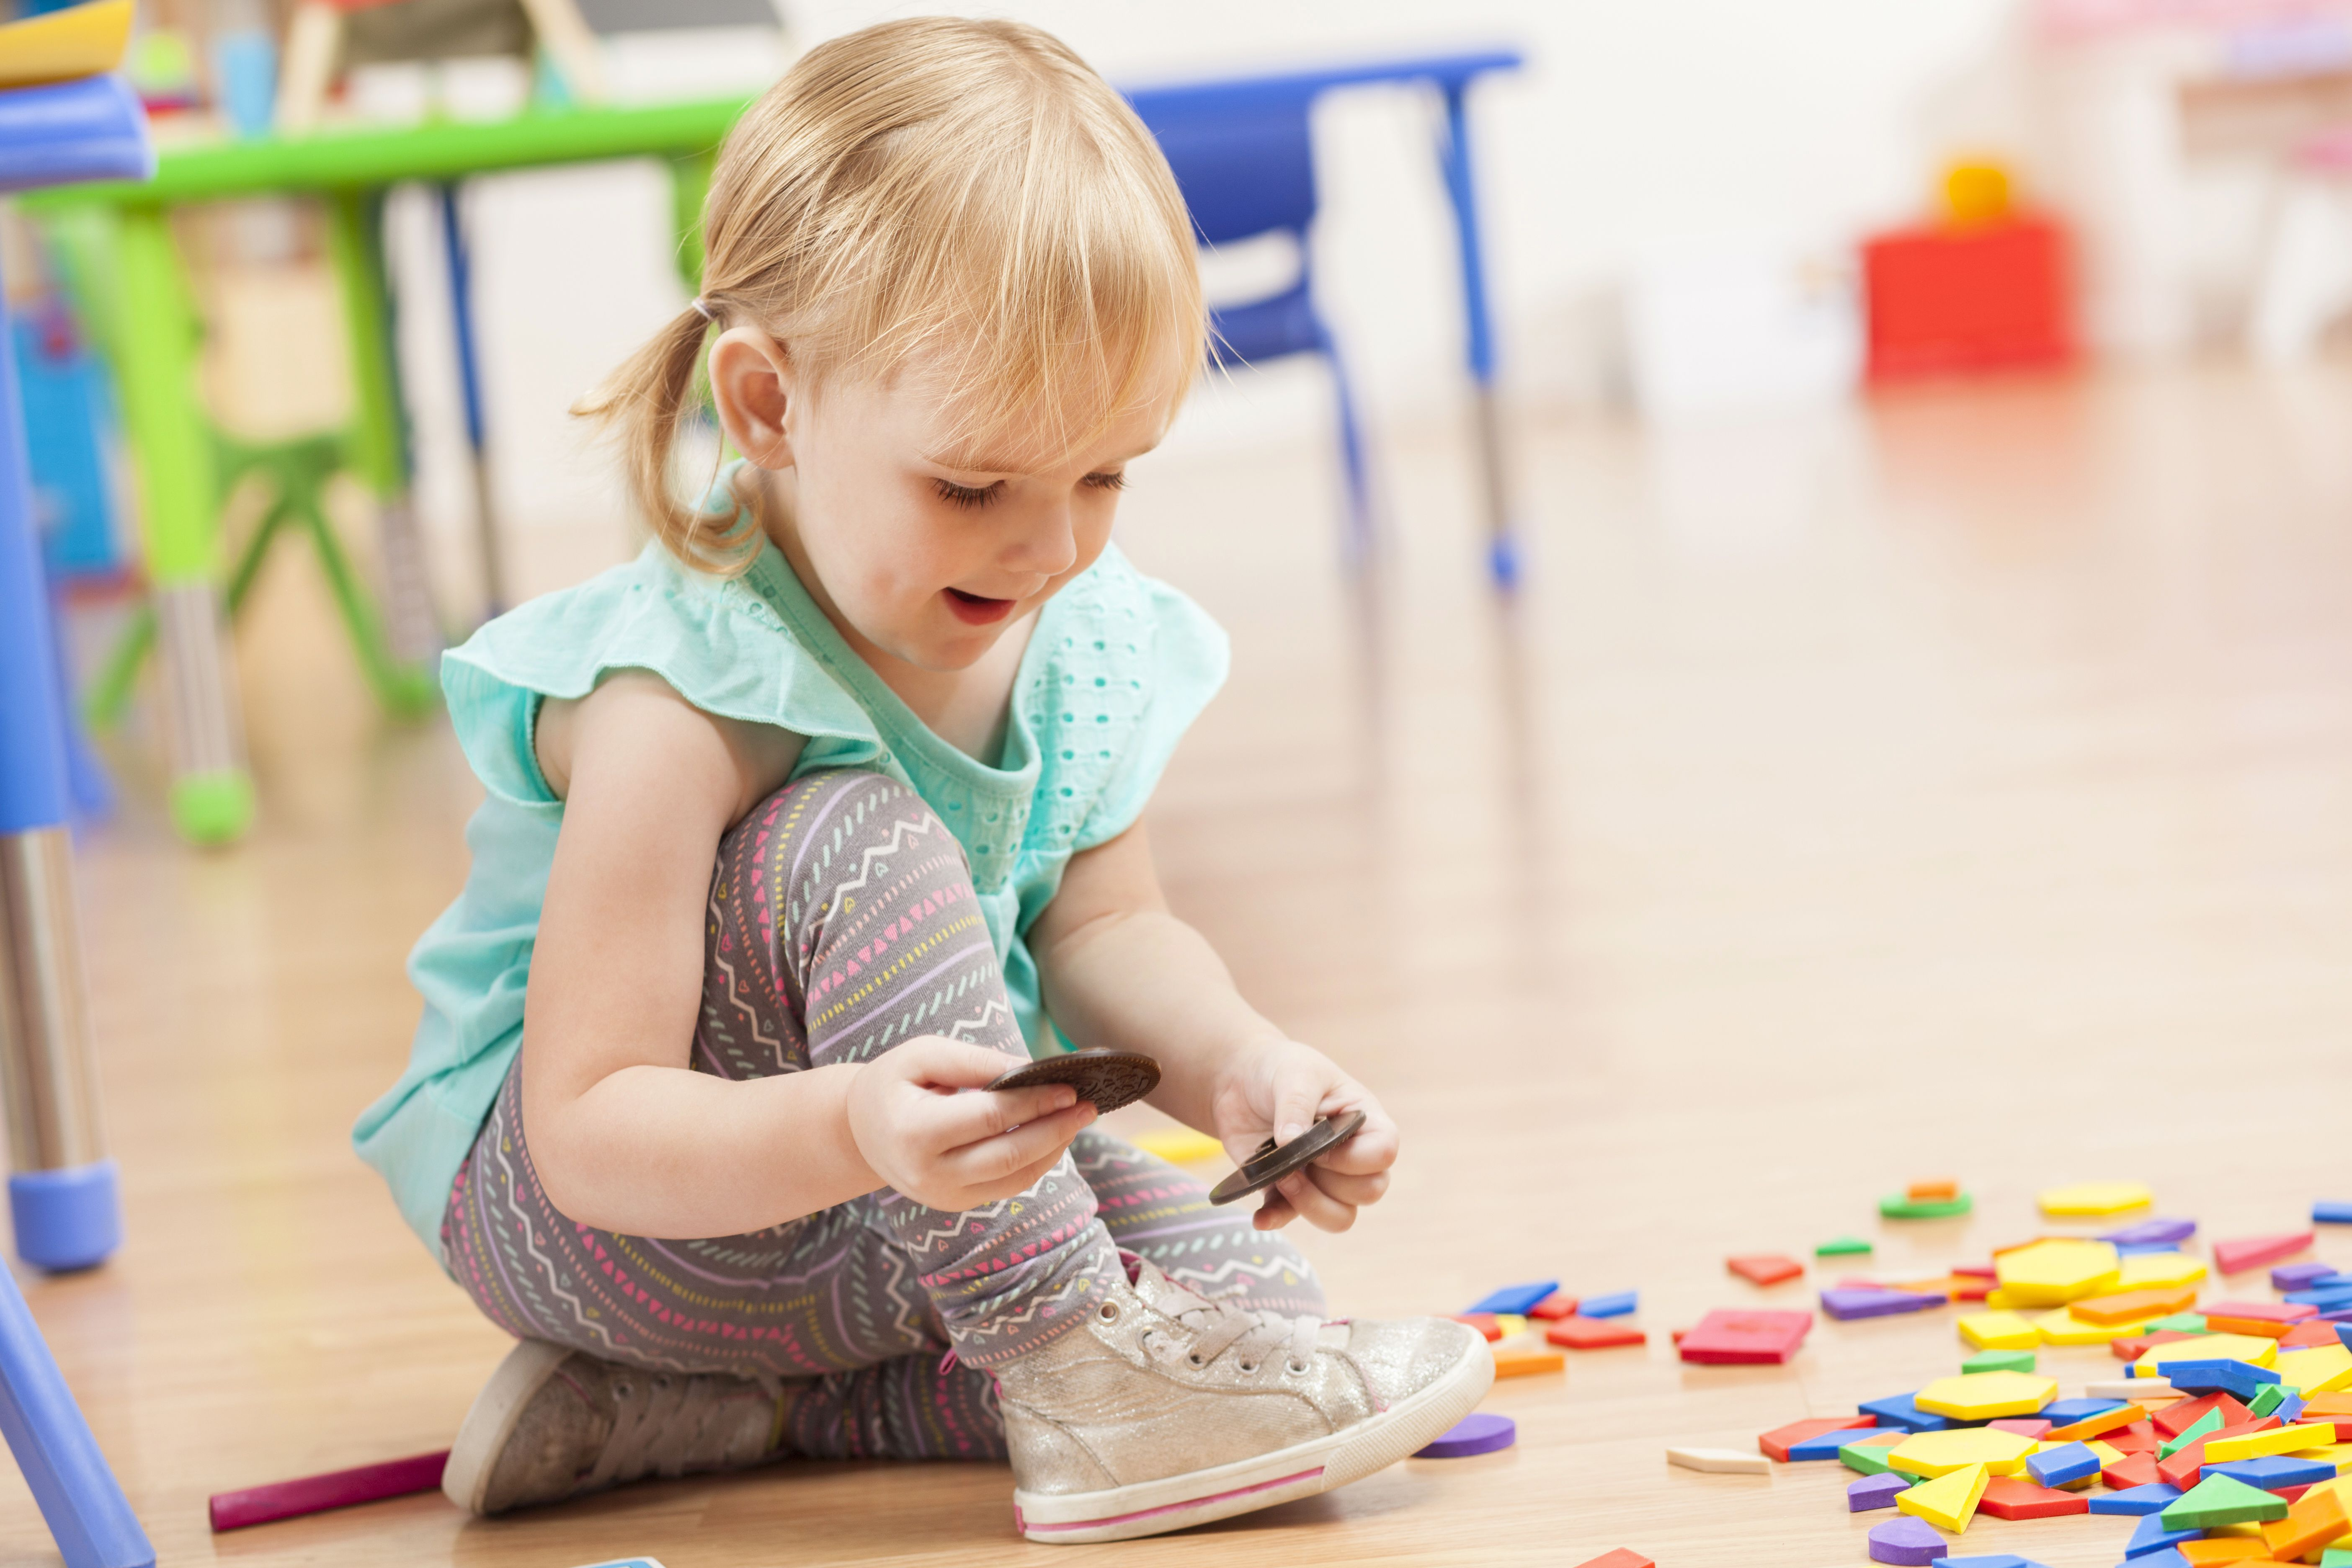 The 21 Best Toys For 3 Year Old Girls In